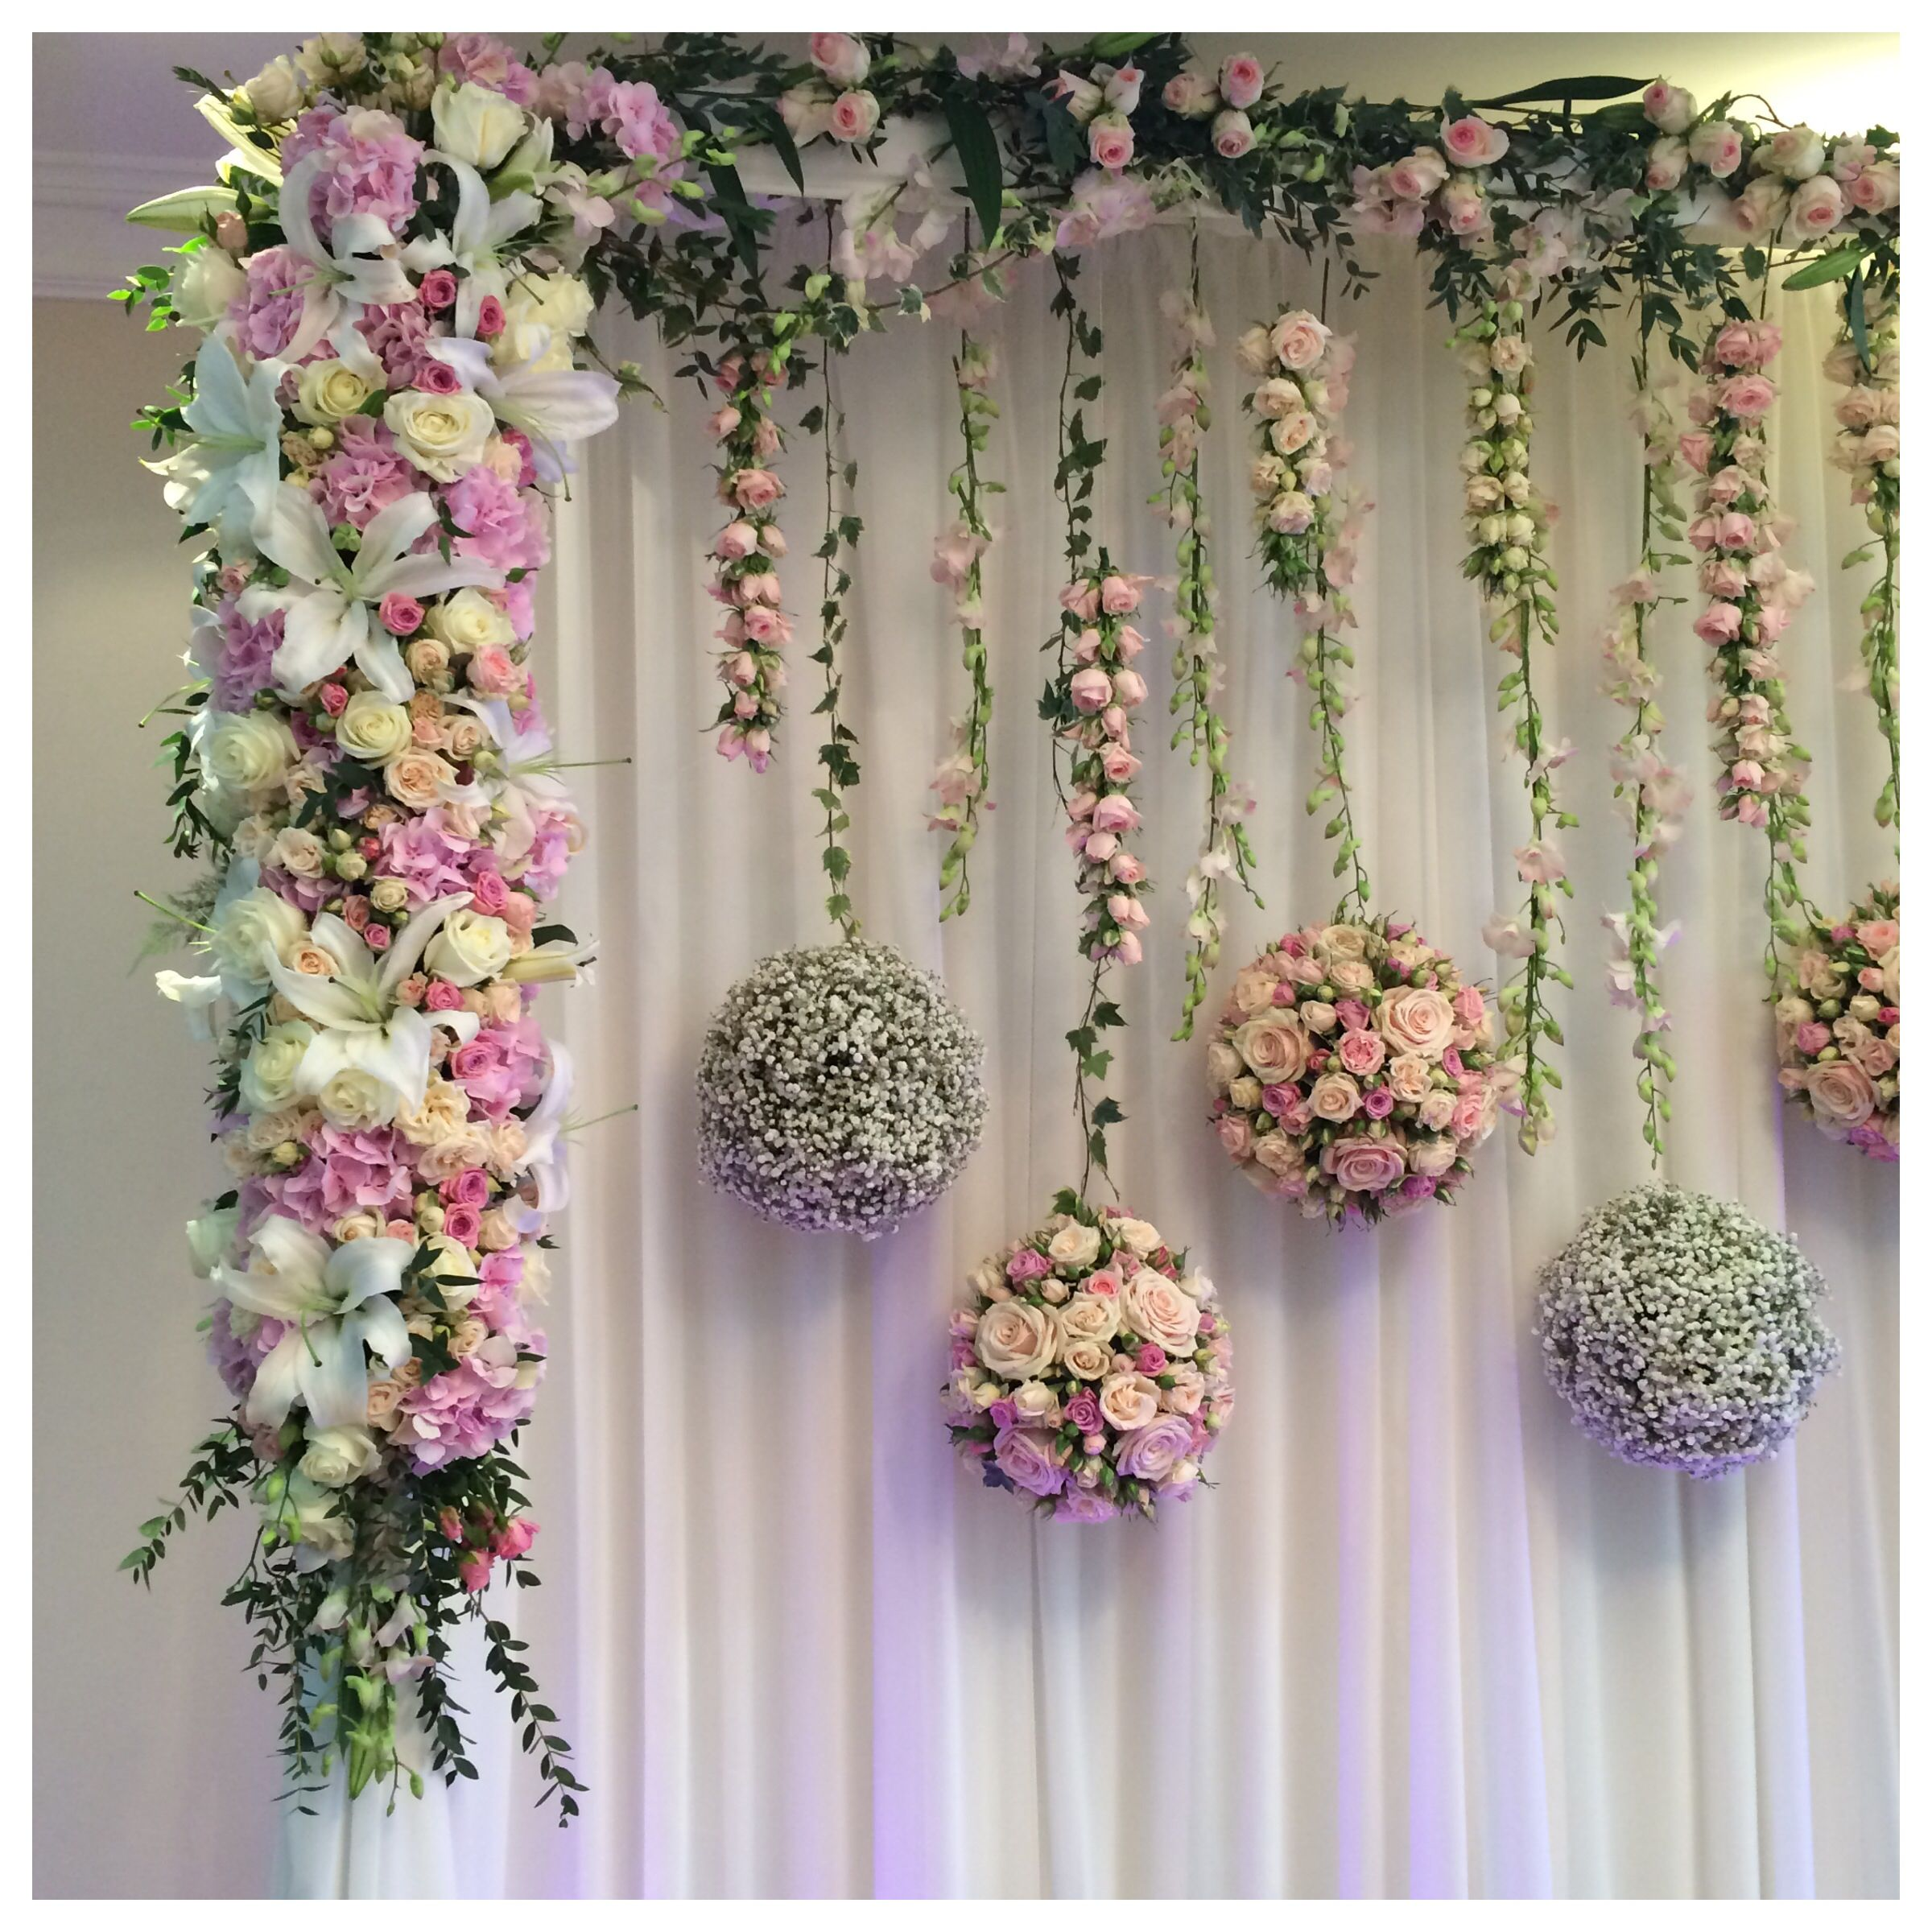 Hanging Flower Balls With A Solid Flower Edging Stage Backdrop